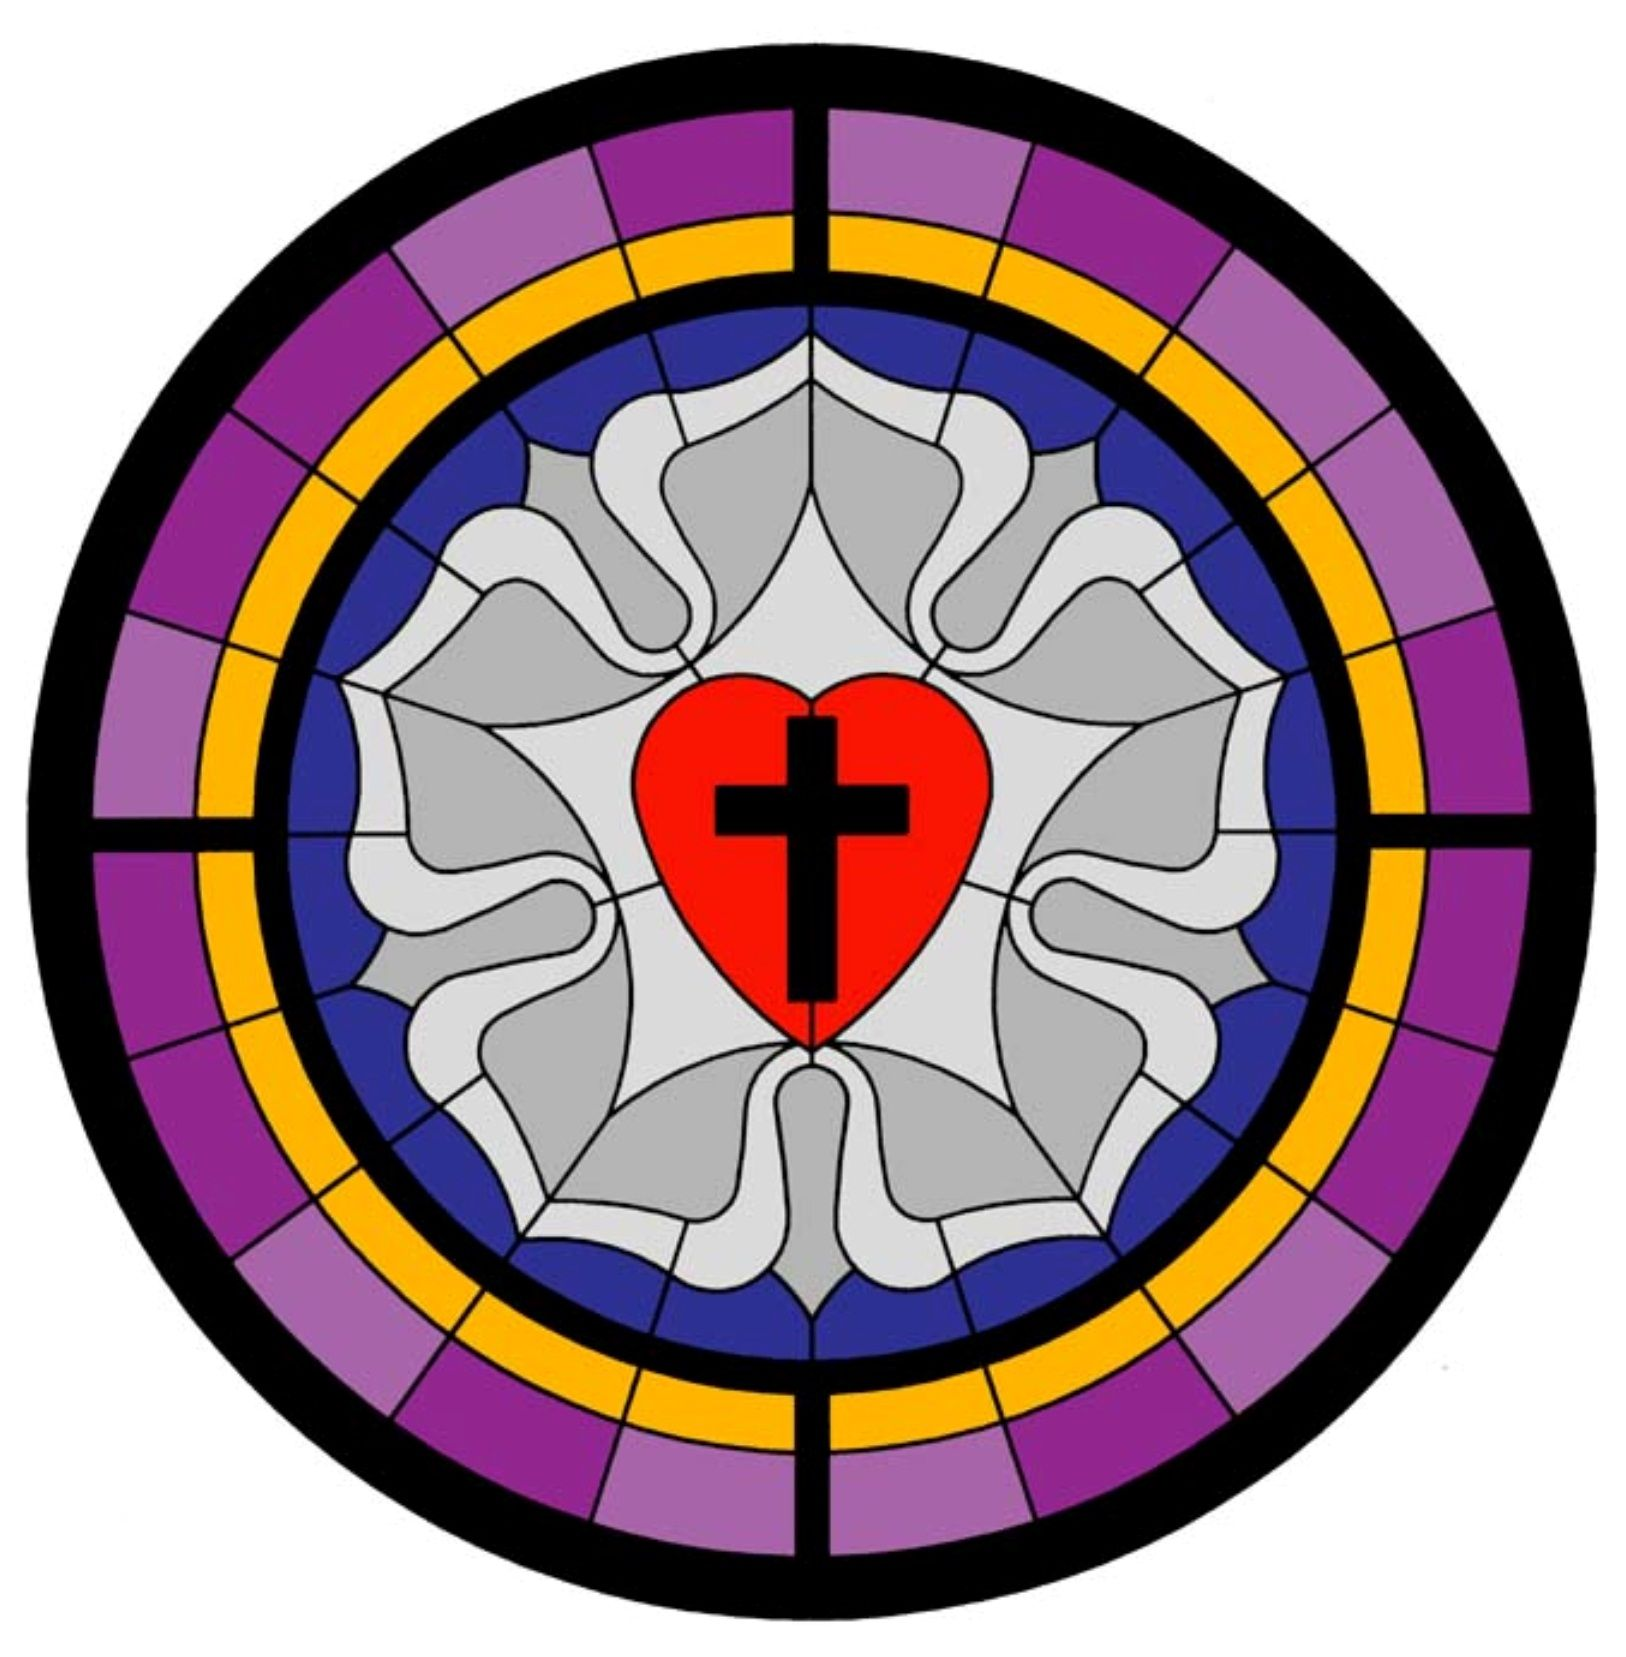 Grace evangelical lutheran church my religion pinterest grace evangelical lutheran church buycottarizona Image collections